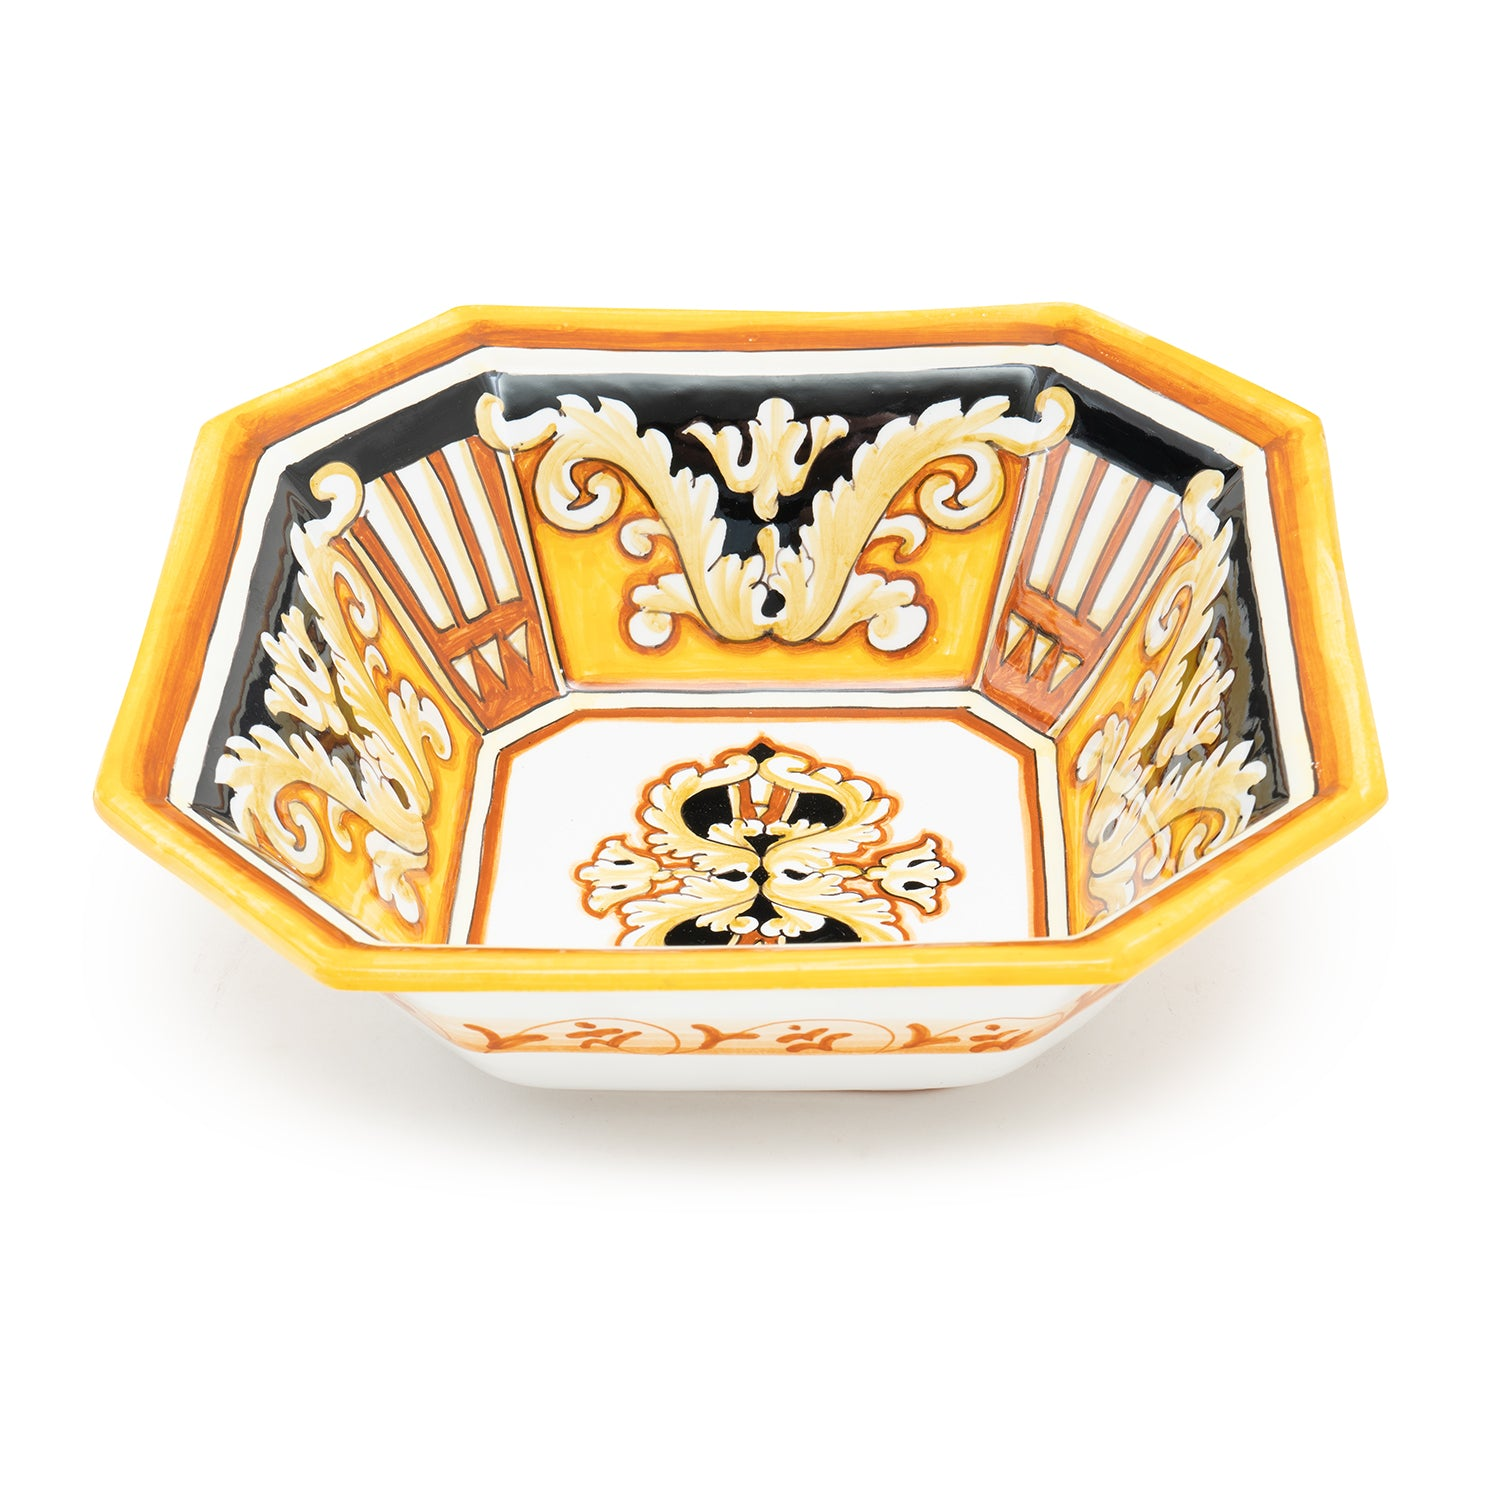 Pia Nero e Oro Full Pattern Octagonal Square Bowl